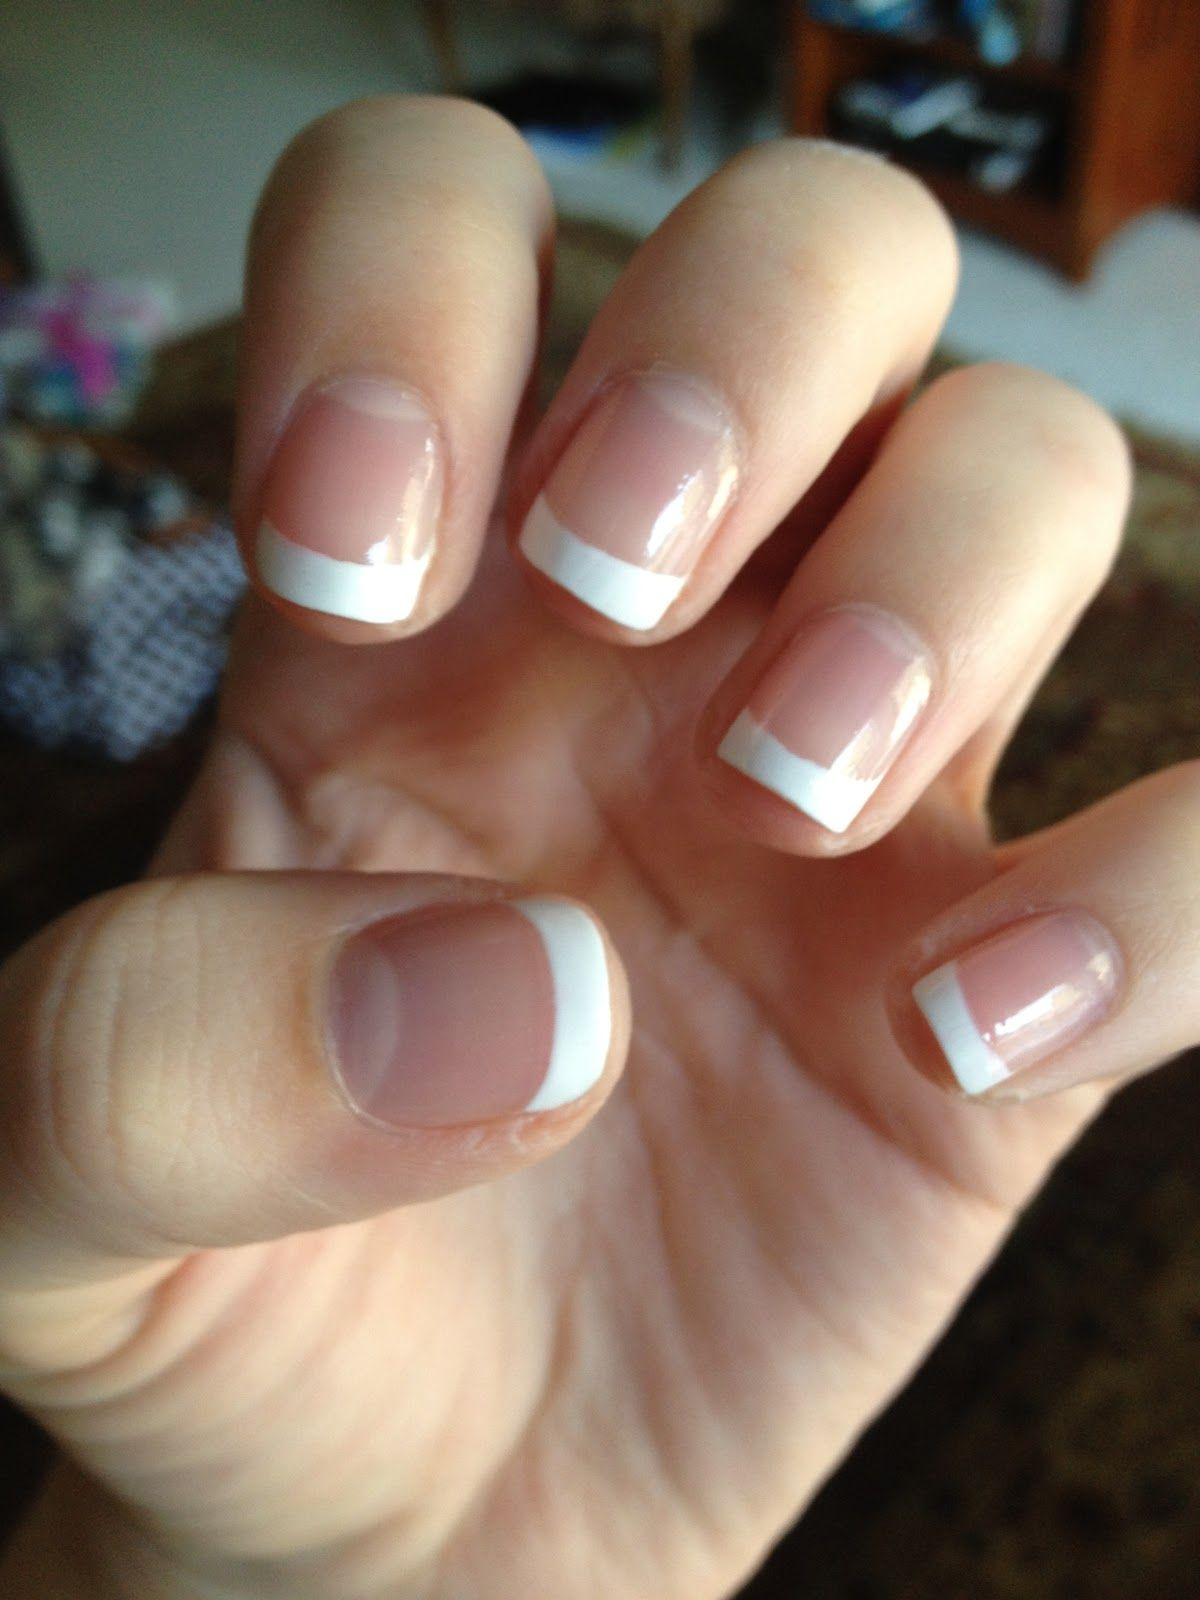 how to do french manicure with short nails | Manicure | Pinterest ...